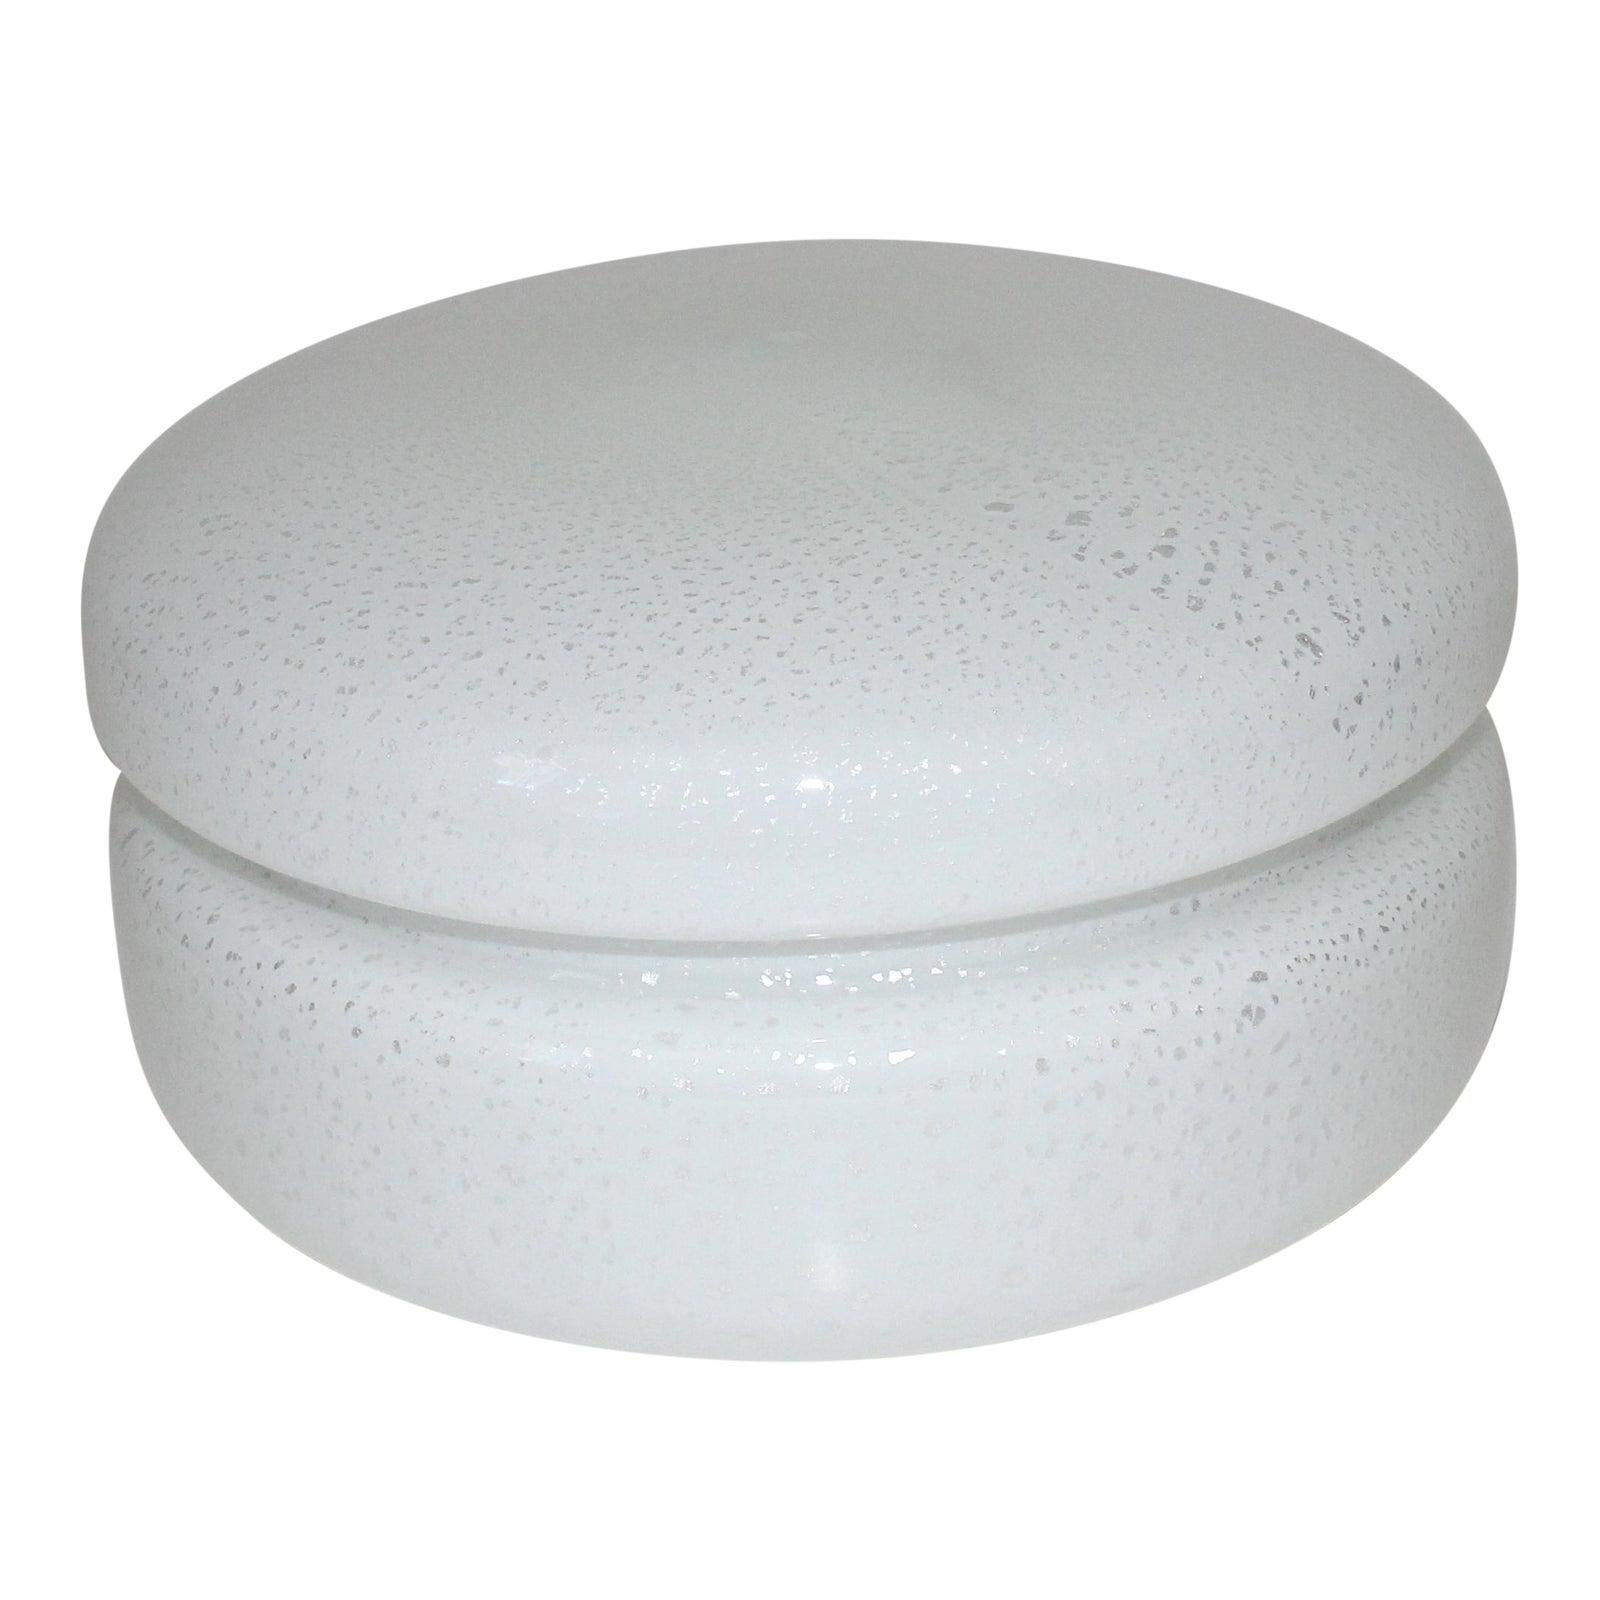 White Murano Glass Covered Dish by Tommaso Barbi